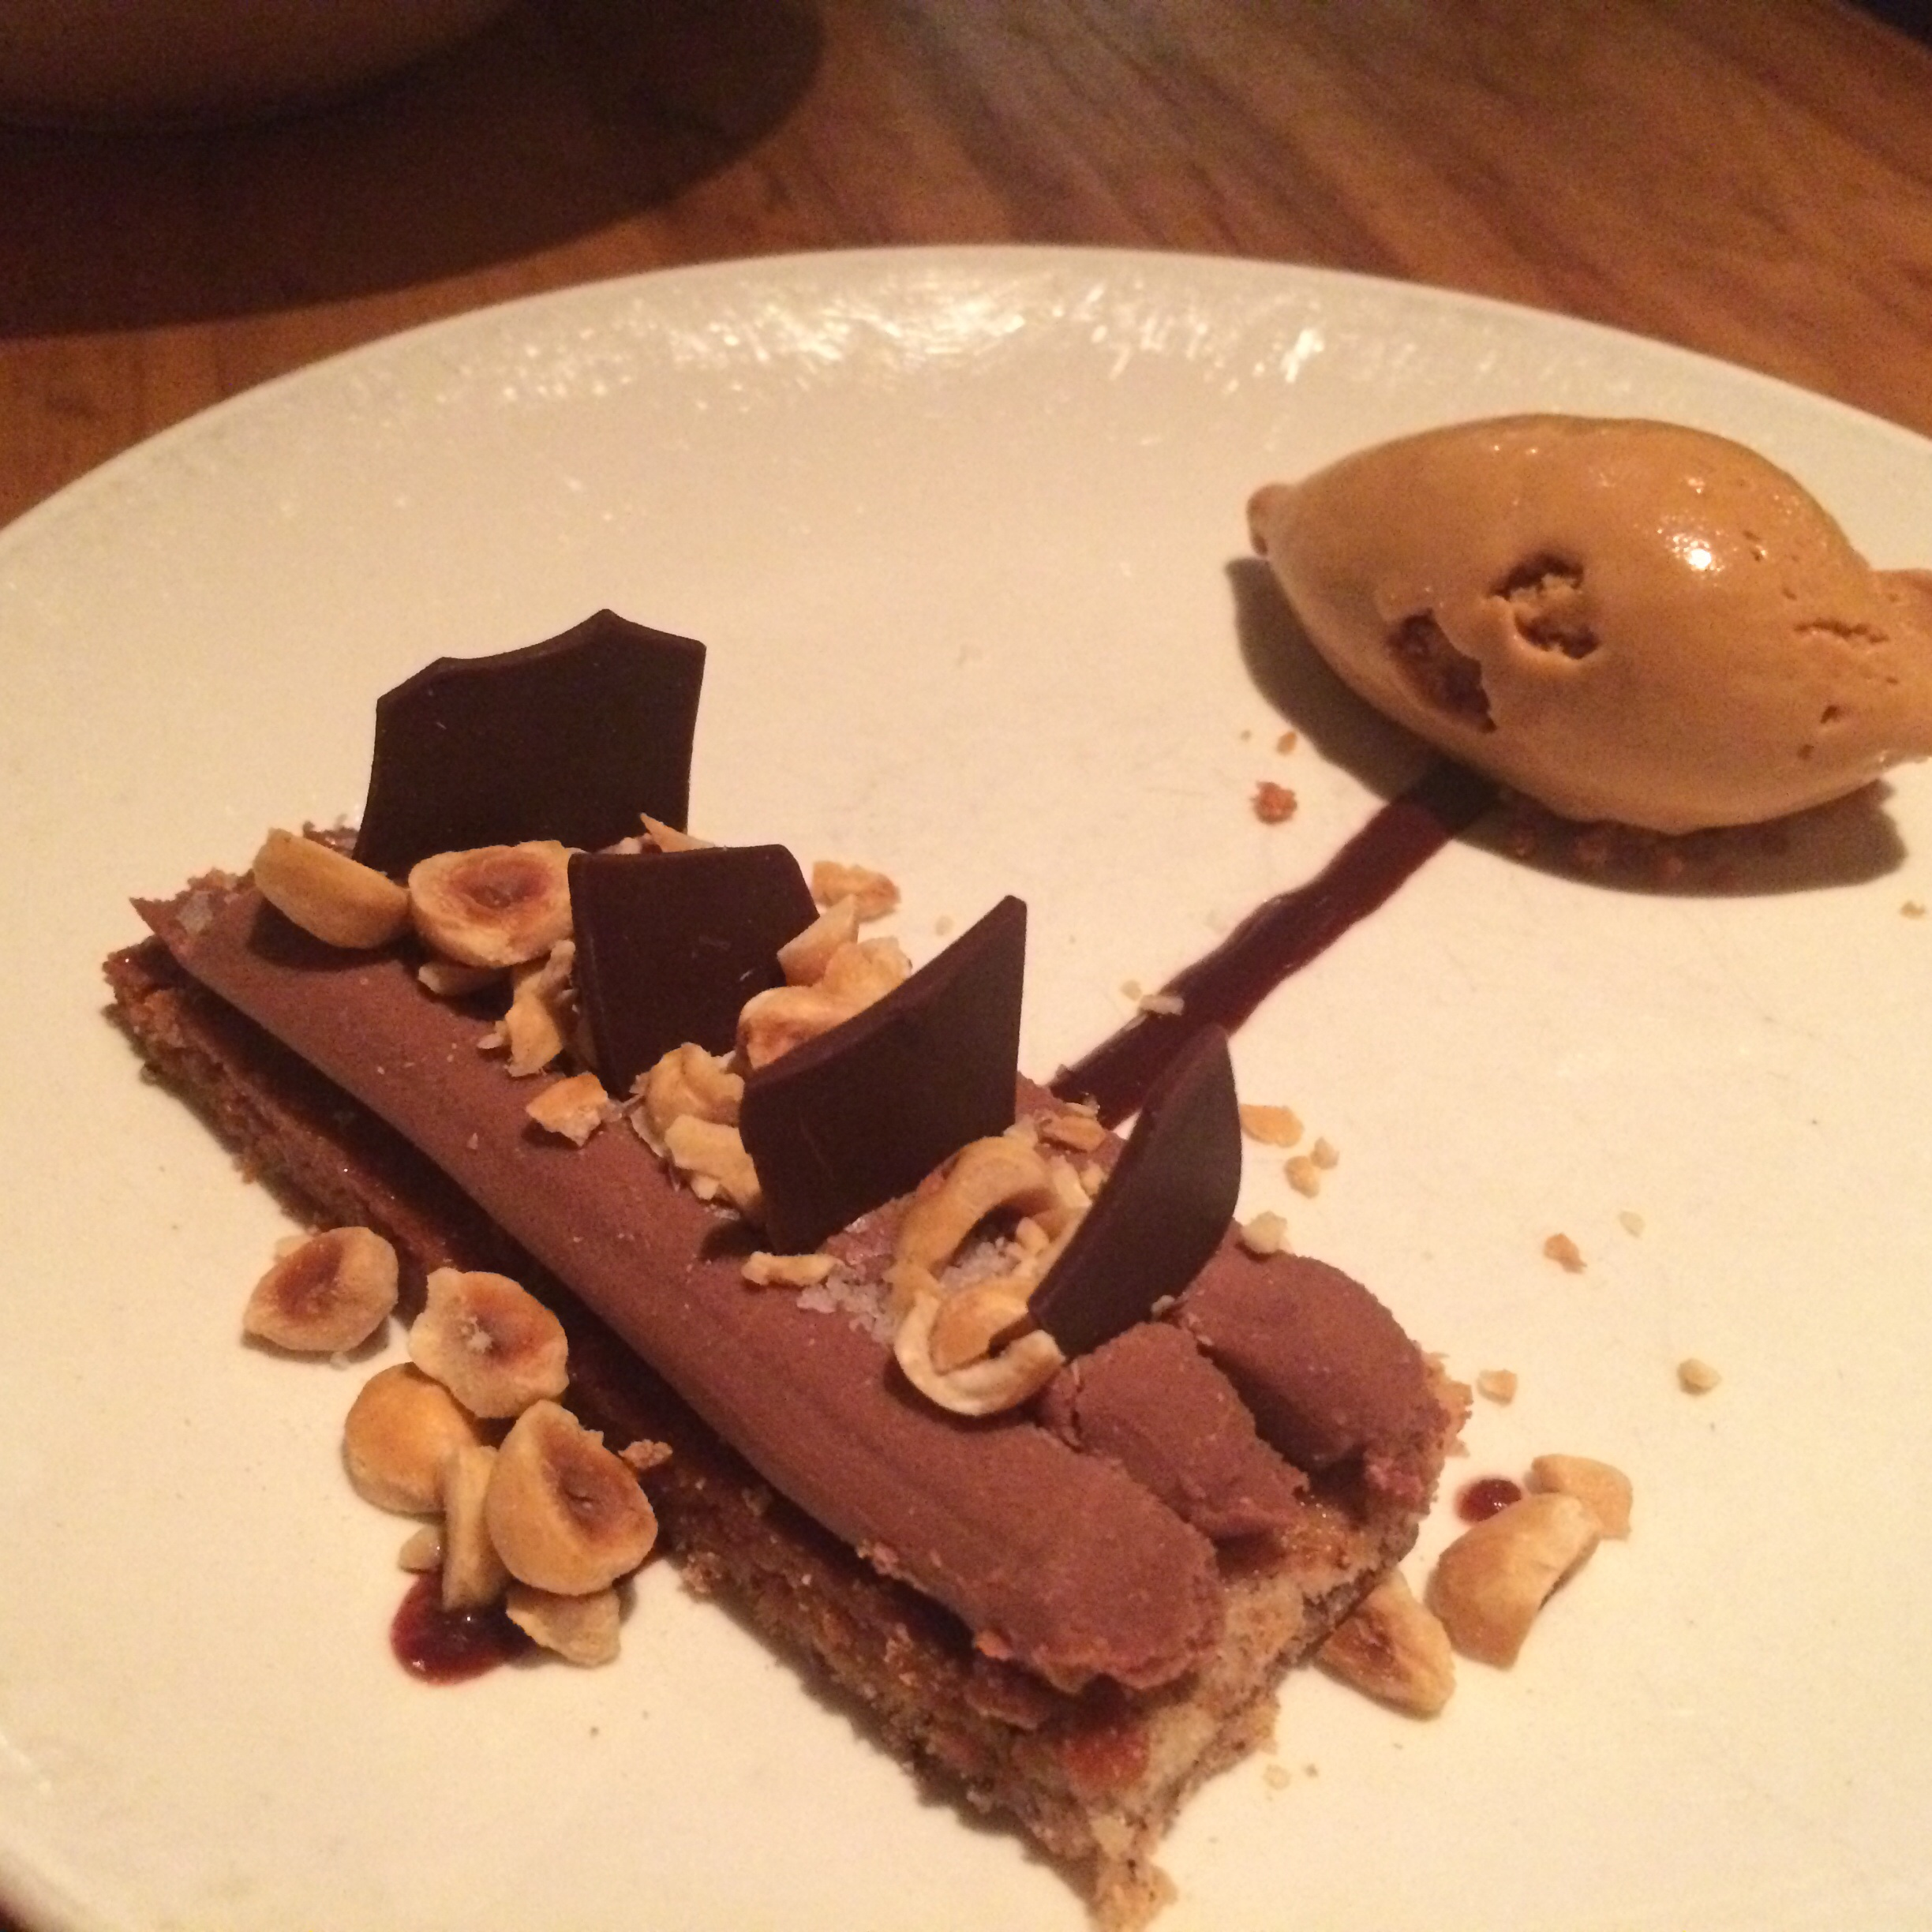 CHOCOLATE HAZELNUT TORTE WITH SALTED CARAMEL GELATO